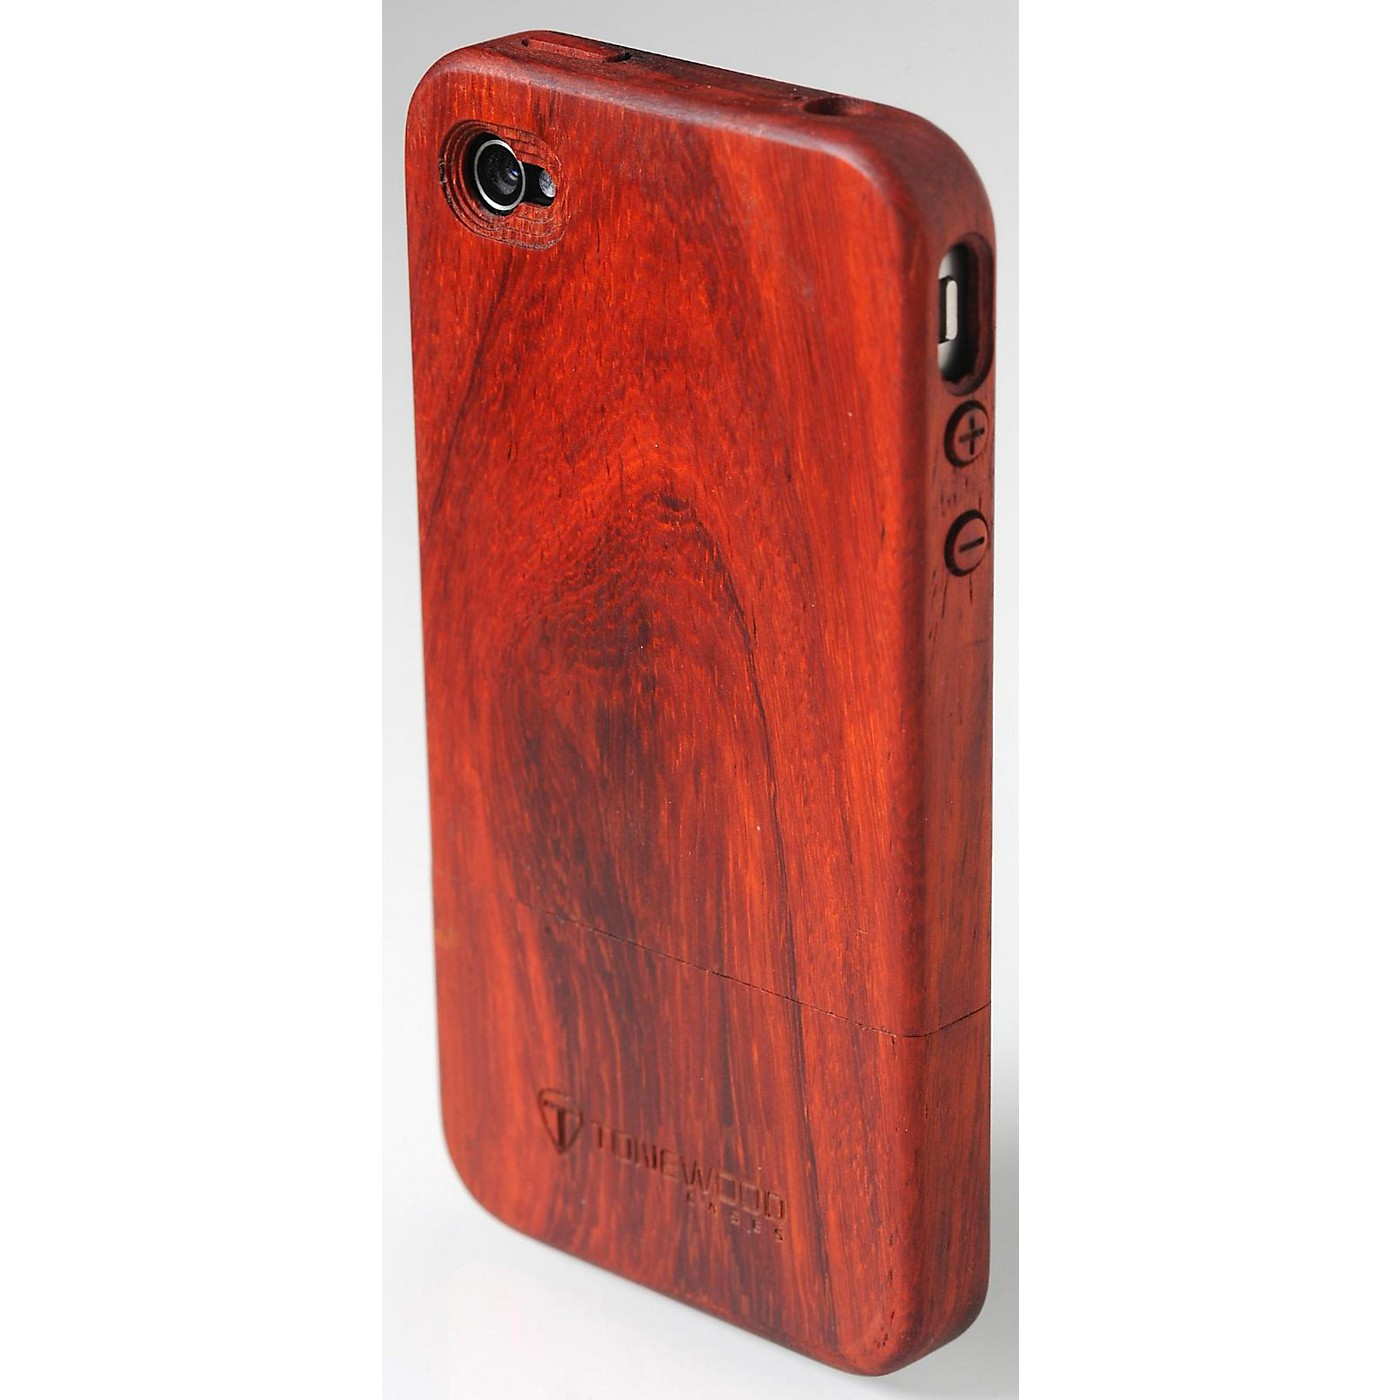 Tonewood Cases iPhone 4 or 4s Case thumbnail